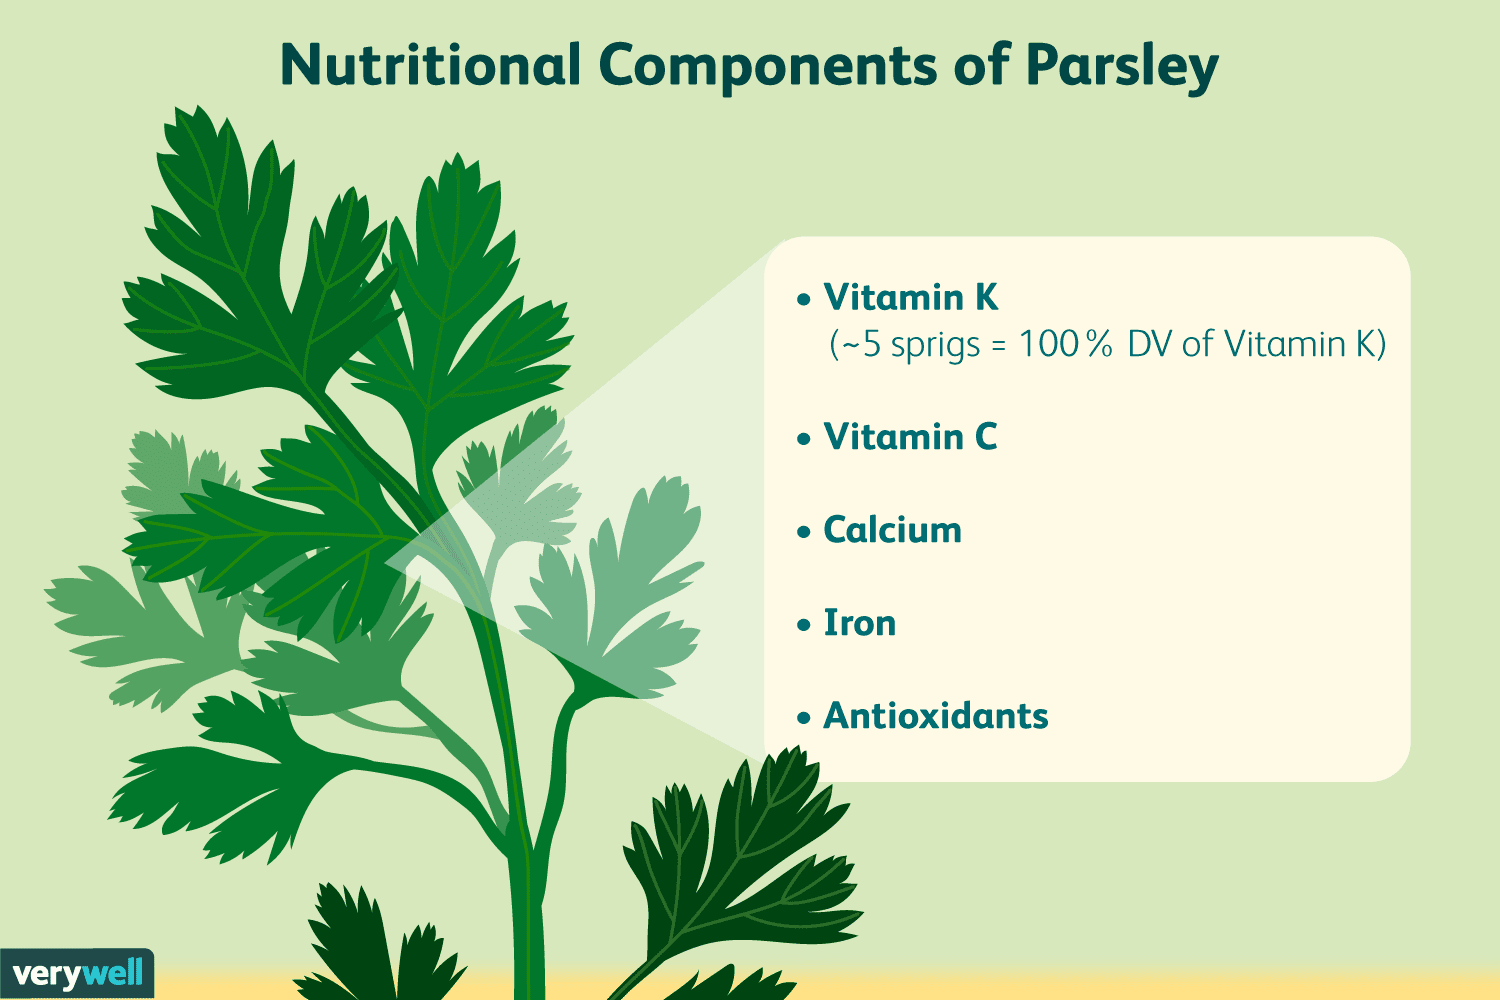 parsley-for-better-digestion-88688-01-fceb703946924b469b6bc7b8126570e0